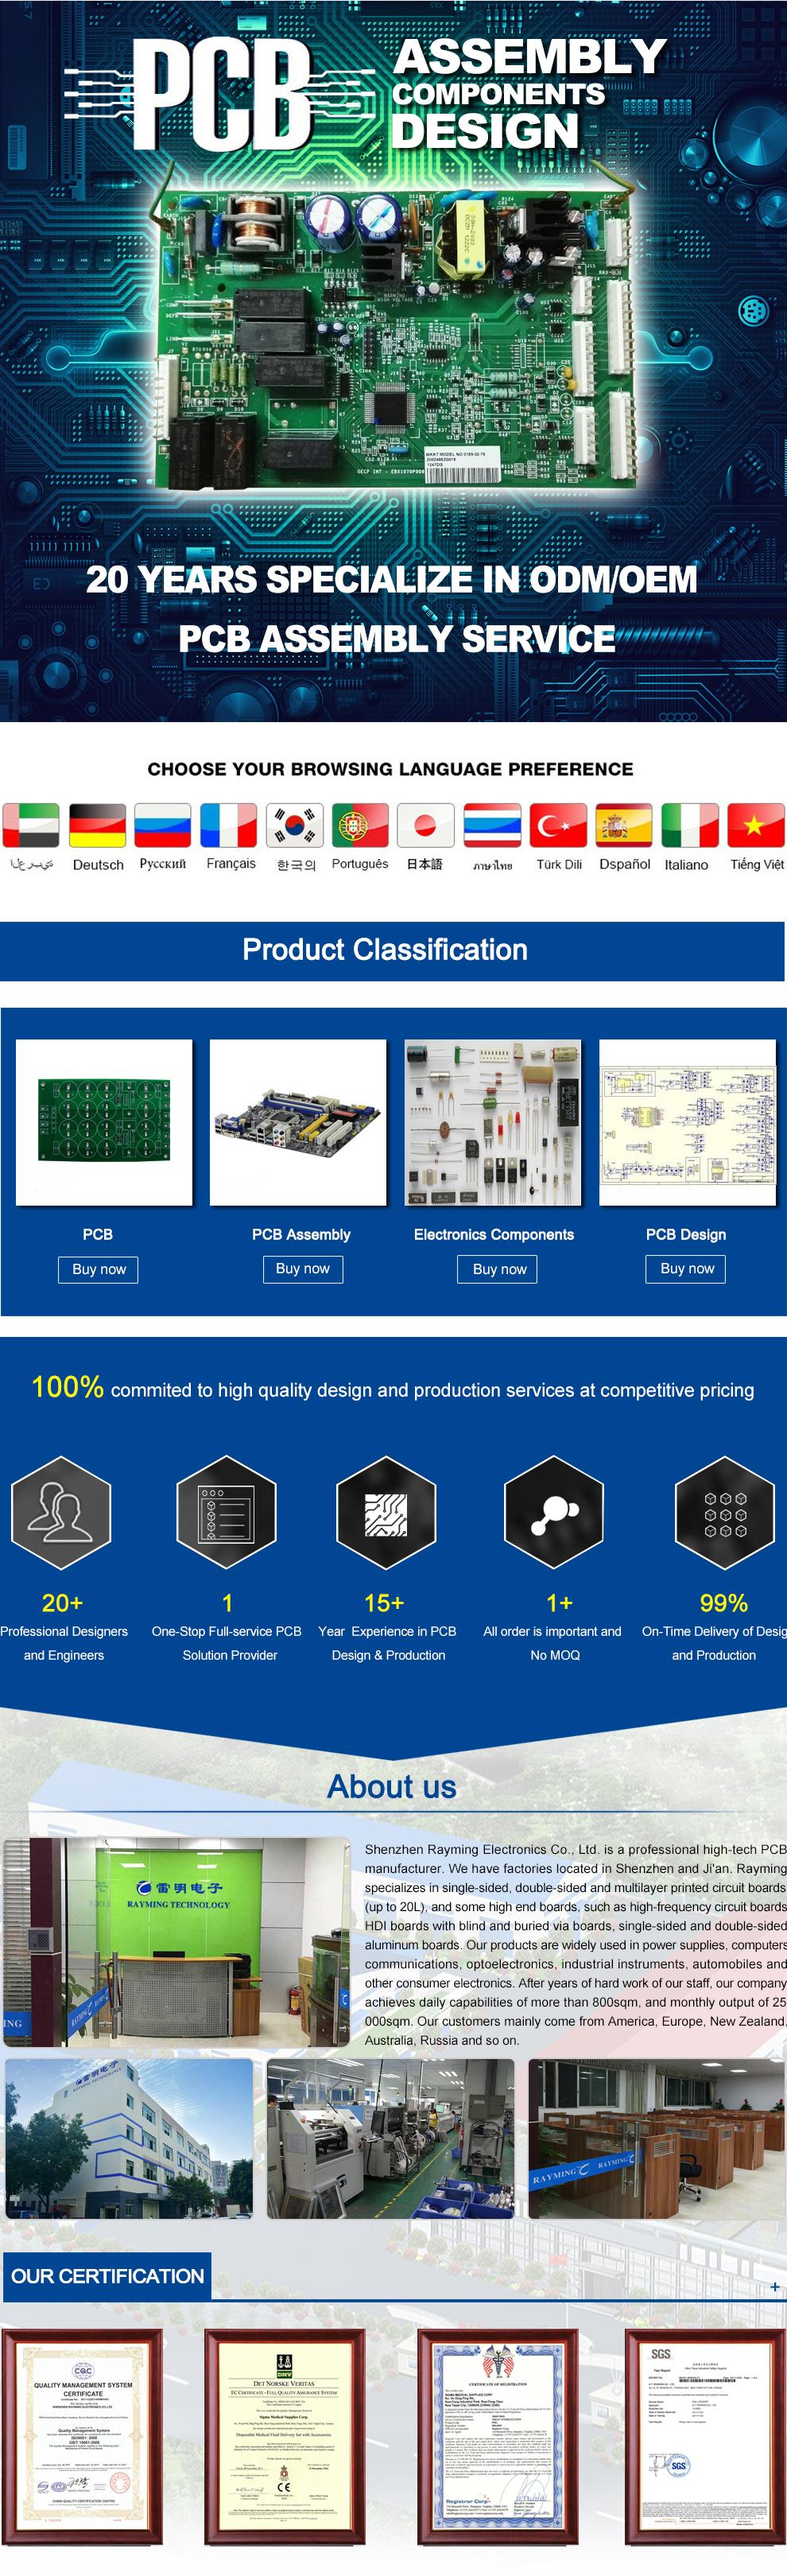 Shenzhen Rayming Electronic Co Ltd Pcbprinted Circuit Boards Blue Solder Mask Taconic Pcb Printed Board Manufacturing For